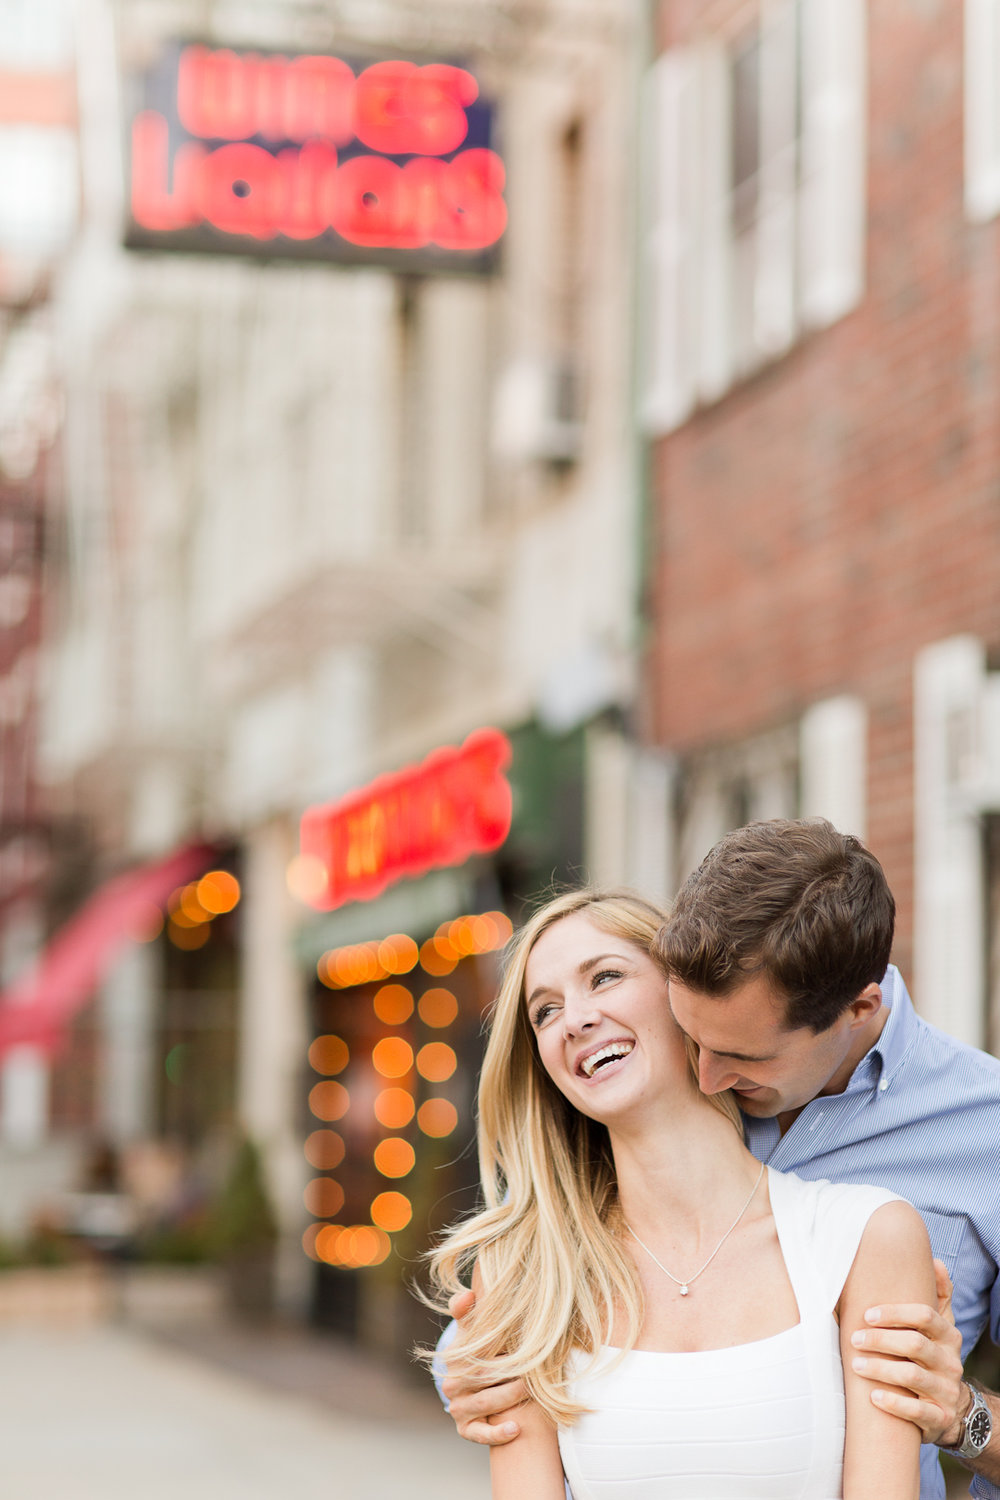 Melissa Kruse Photography - Daniece & Chris West Village Engagement Photos-127.jpg